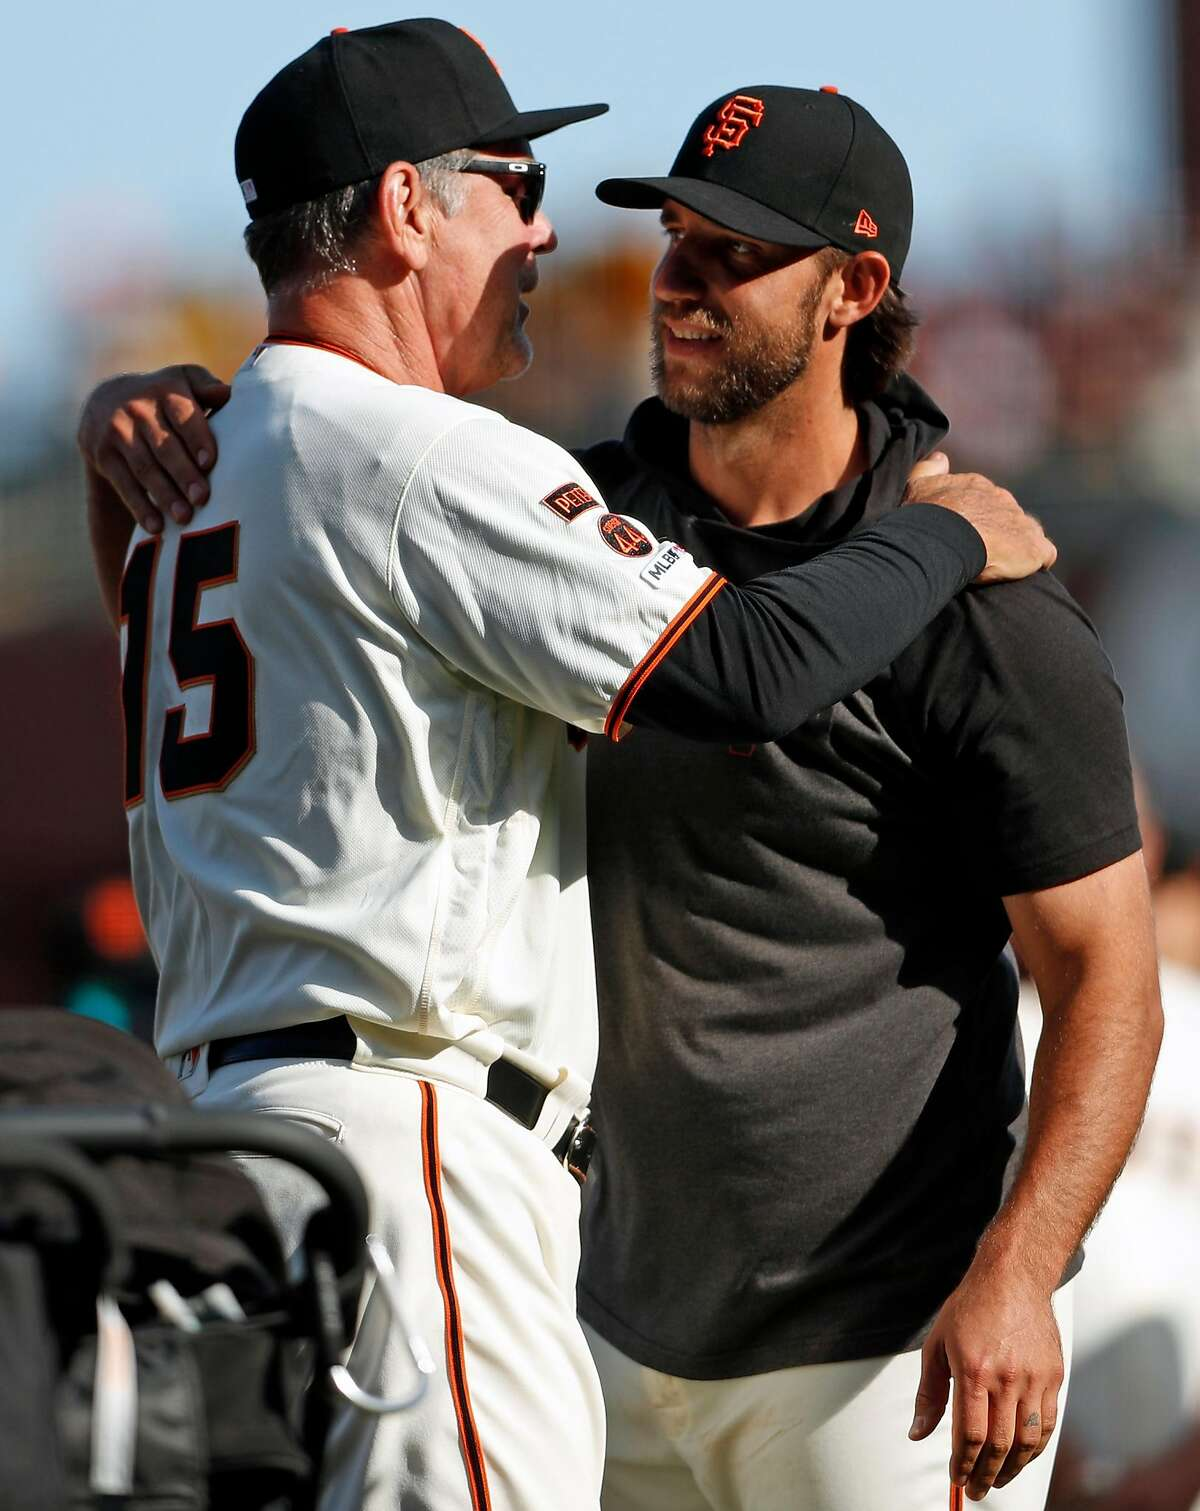 San Francisco Giants' Madison Bumgarner embraces Bruce Bochy as Bochy is honored after final game as manager of Giants at Oracle Park in San Francisco, Calif., on Sunday, September 29, 2019.